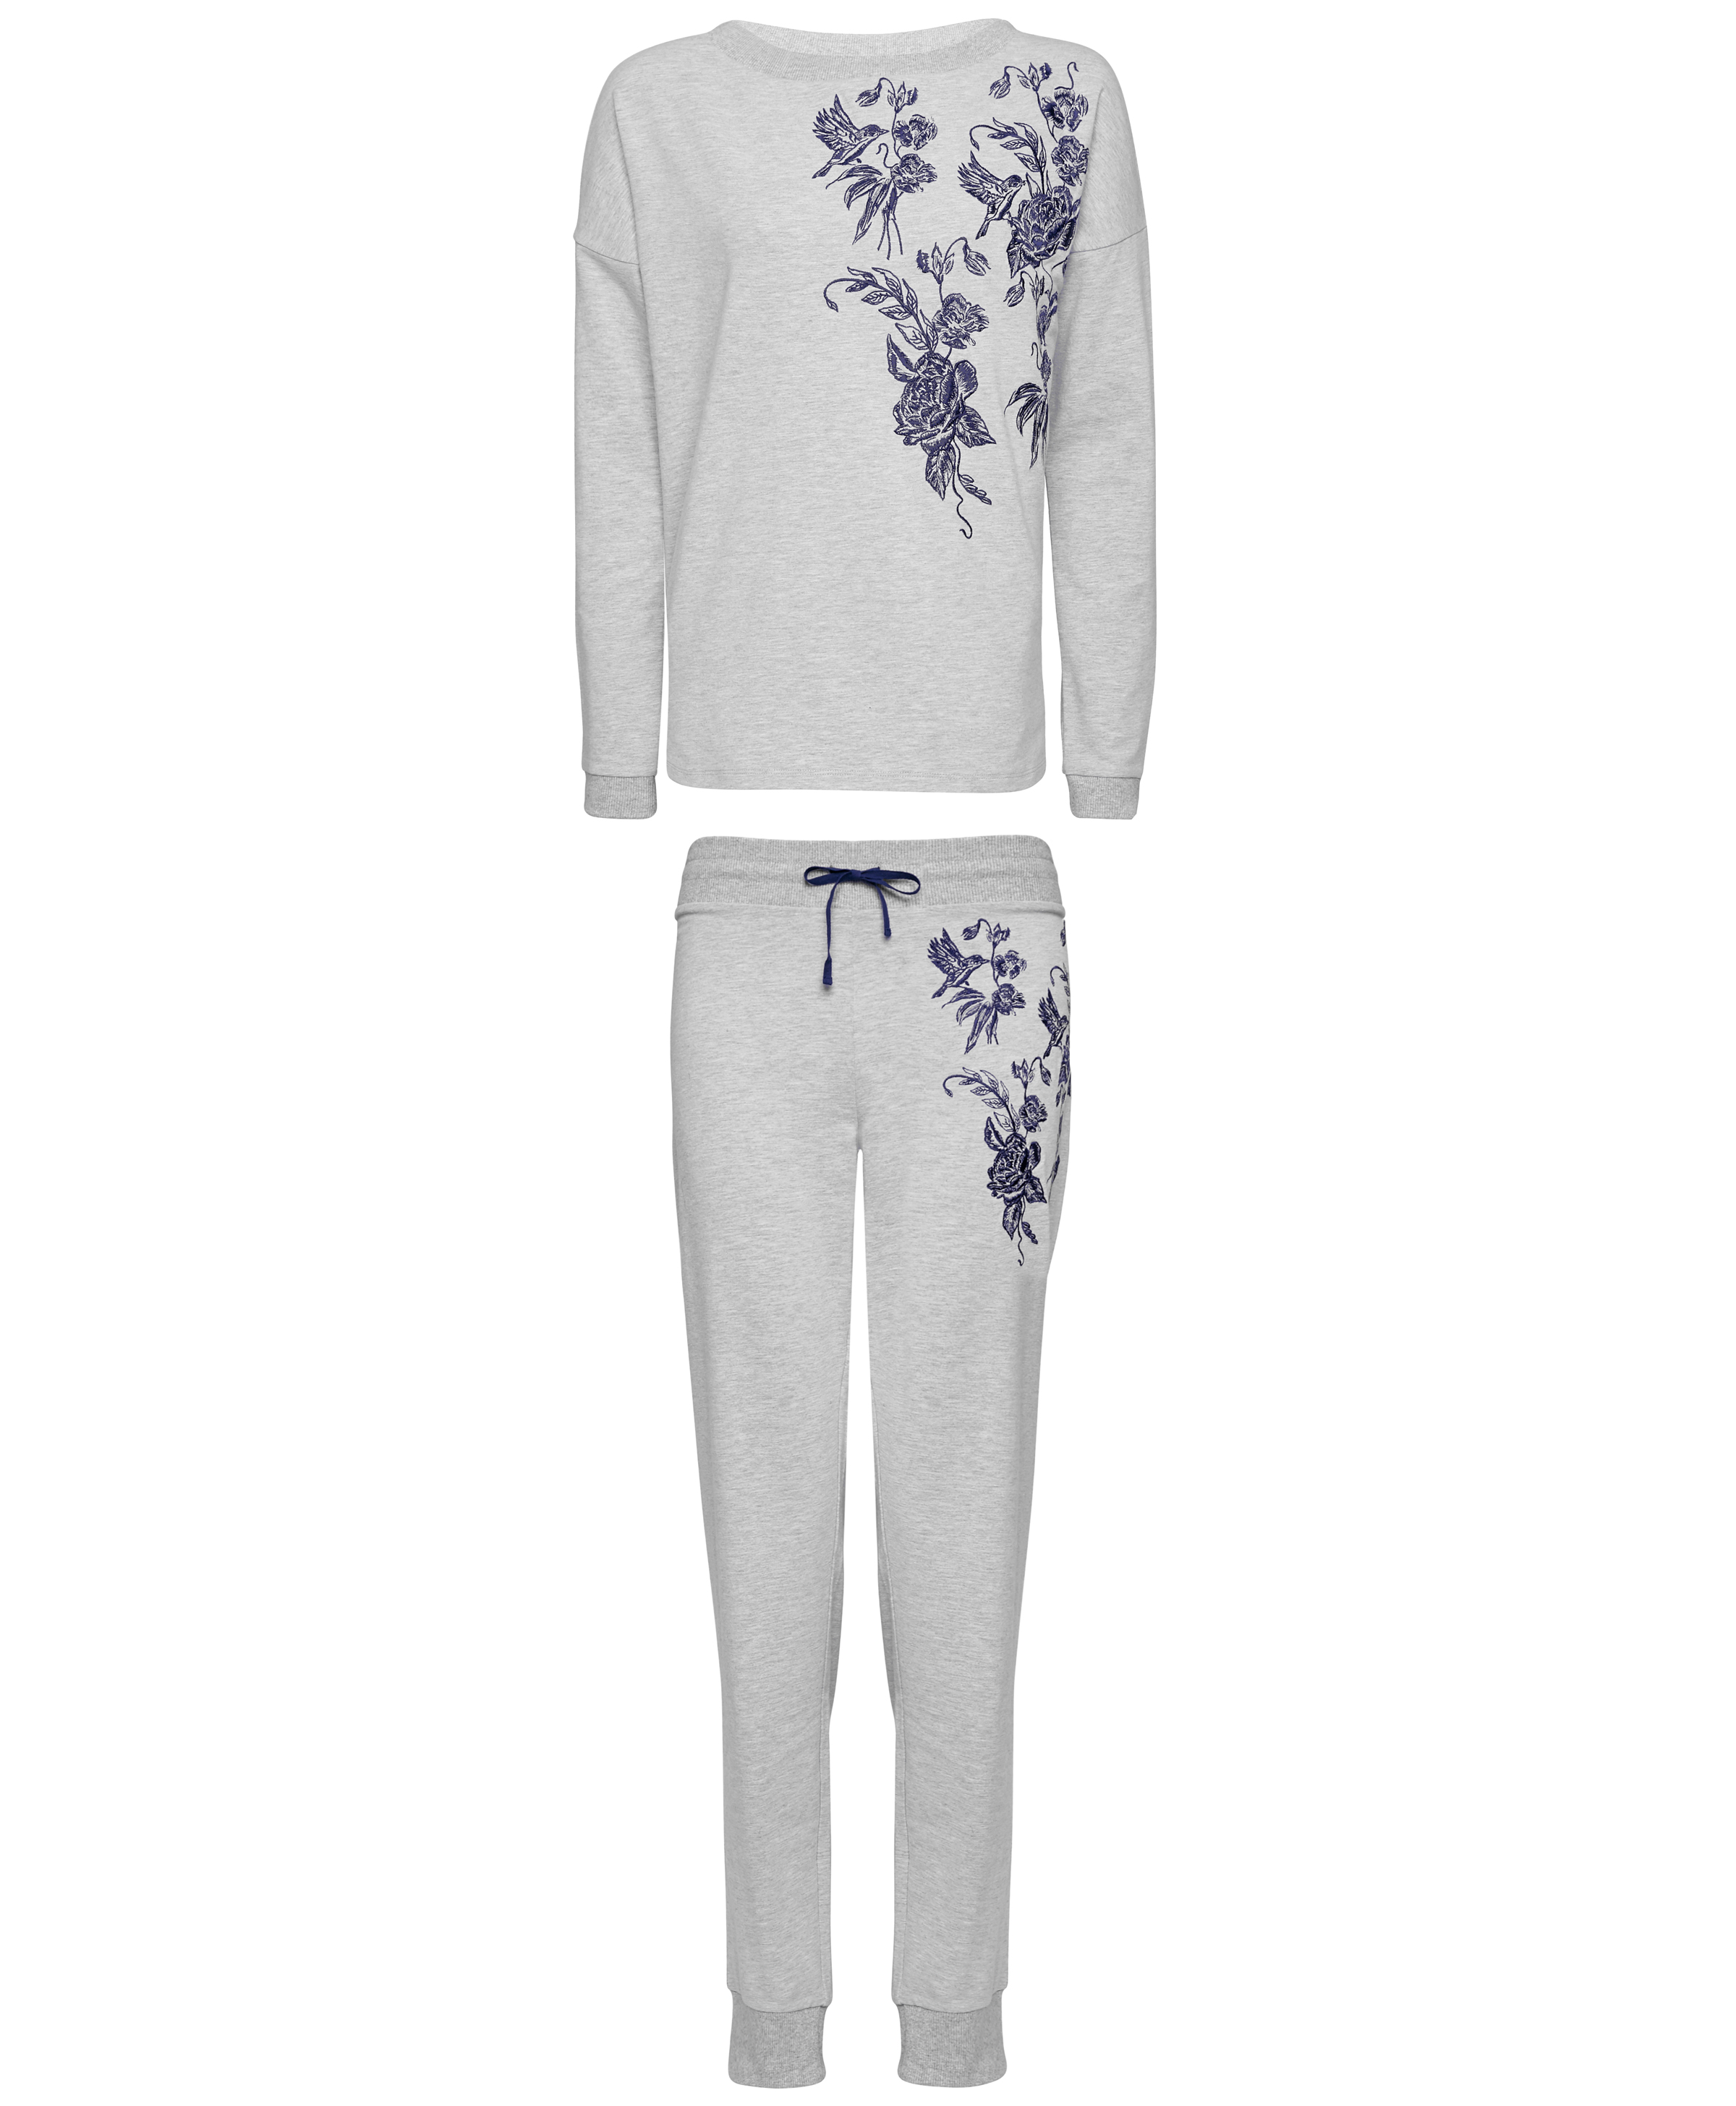 Figleaves Hummingbird Embroidered Sweatshirt; Hummingbird Embroidered Joggers